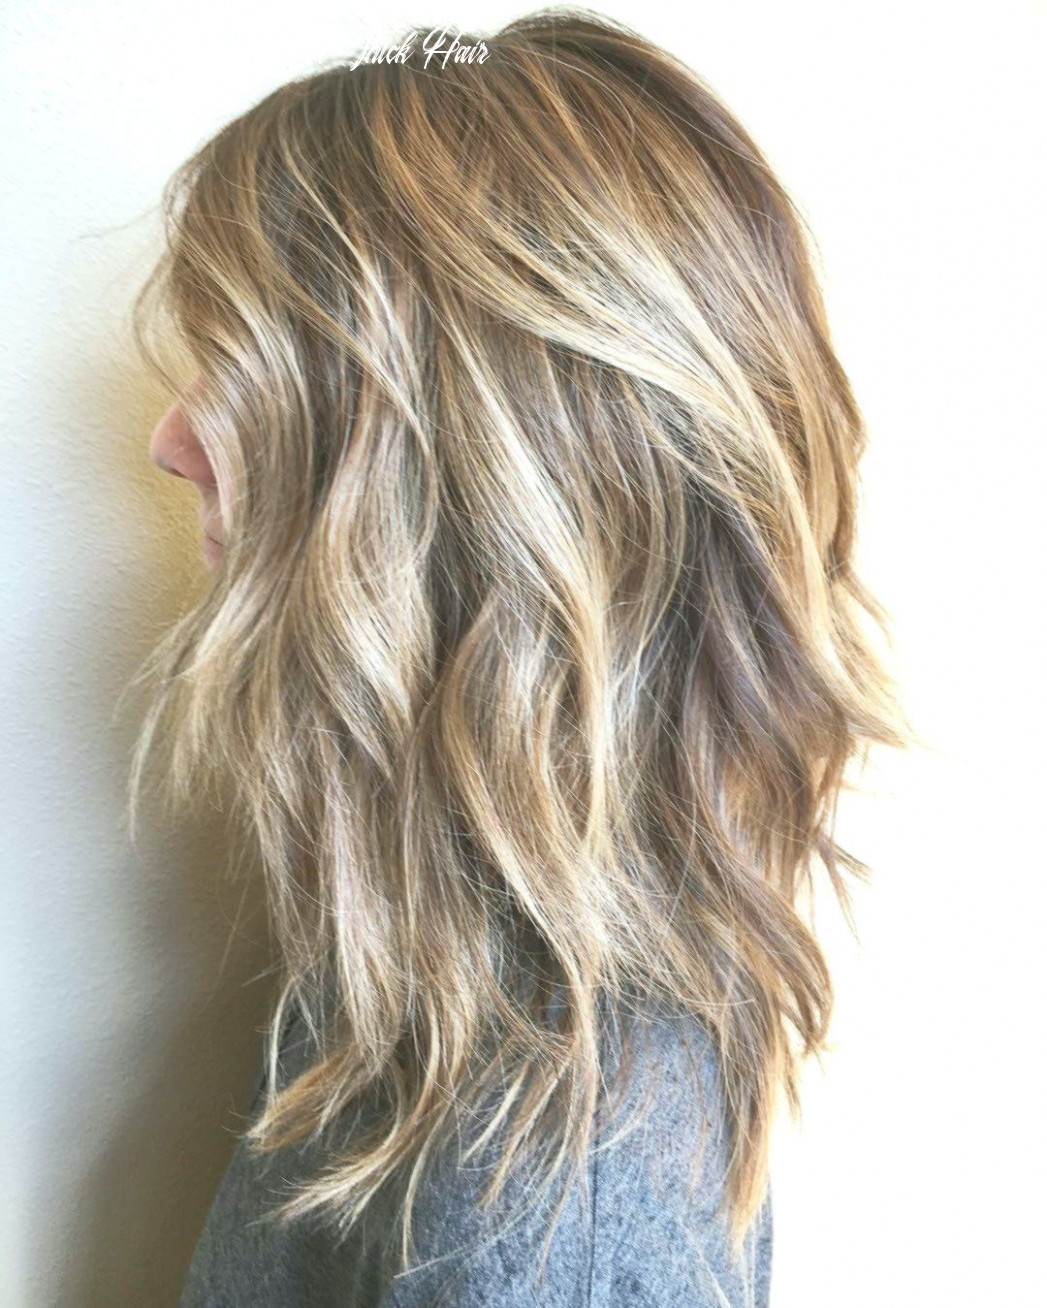 8 messy medium hairstyles for thick hair | thick hair styles